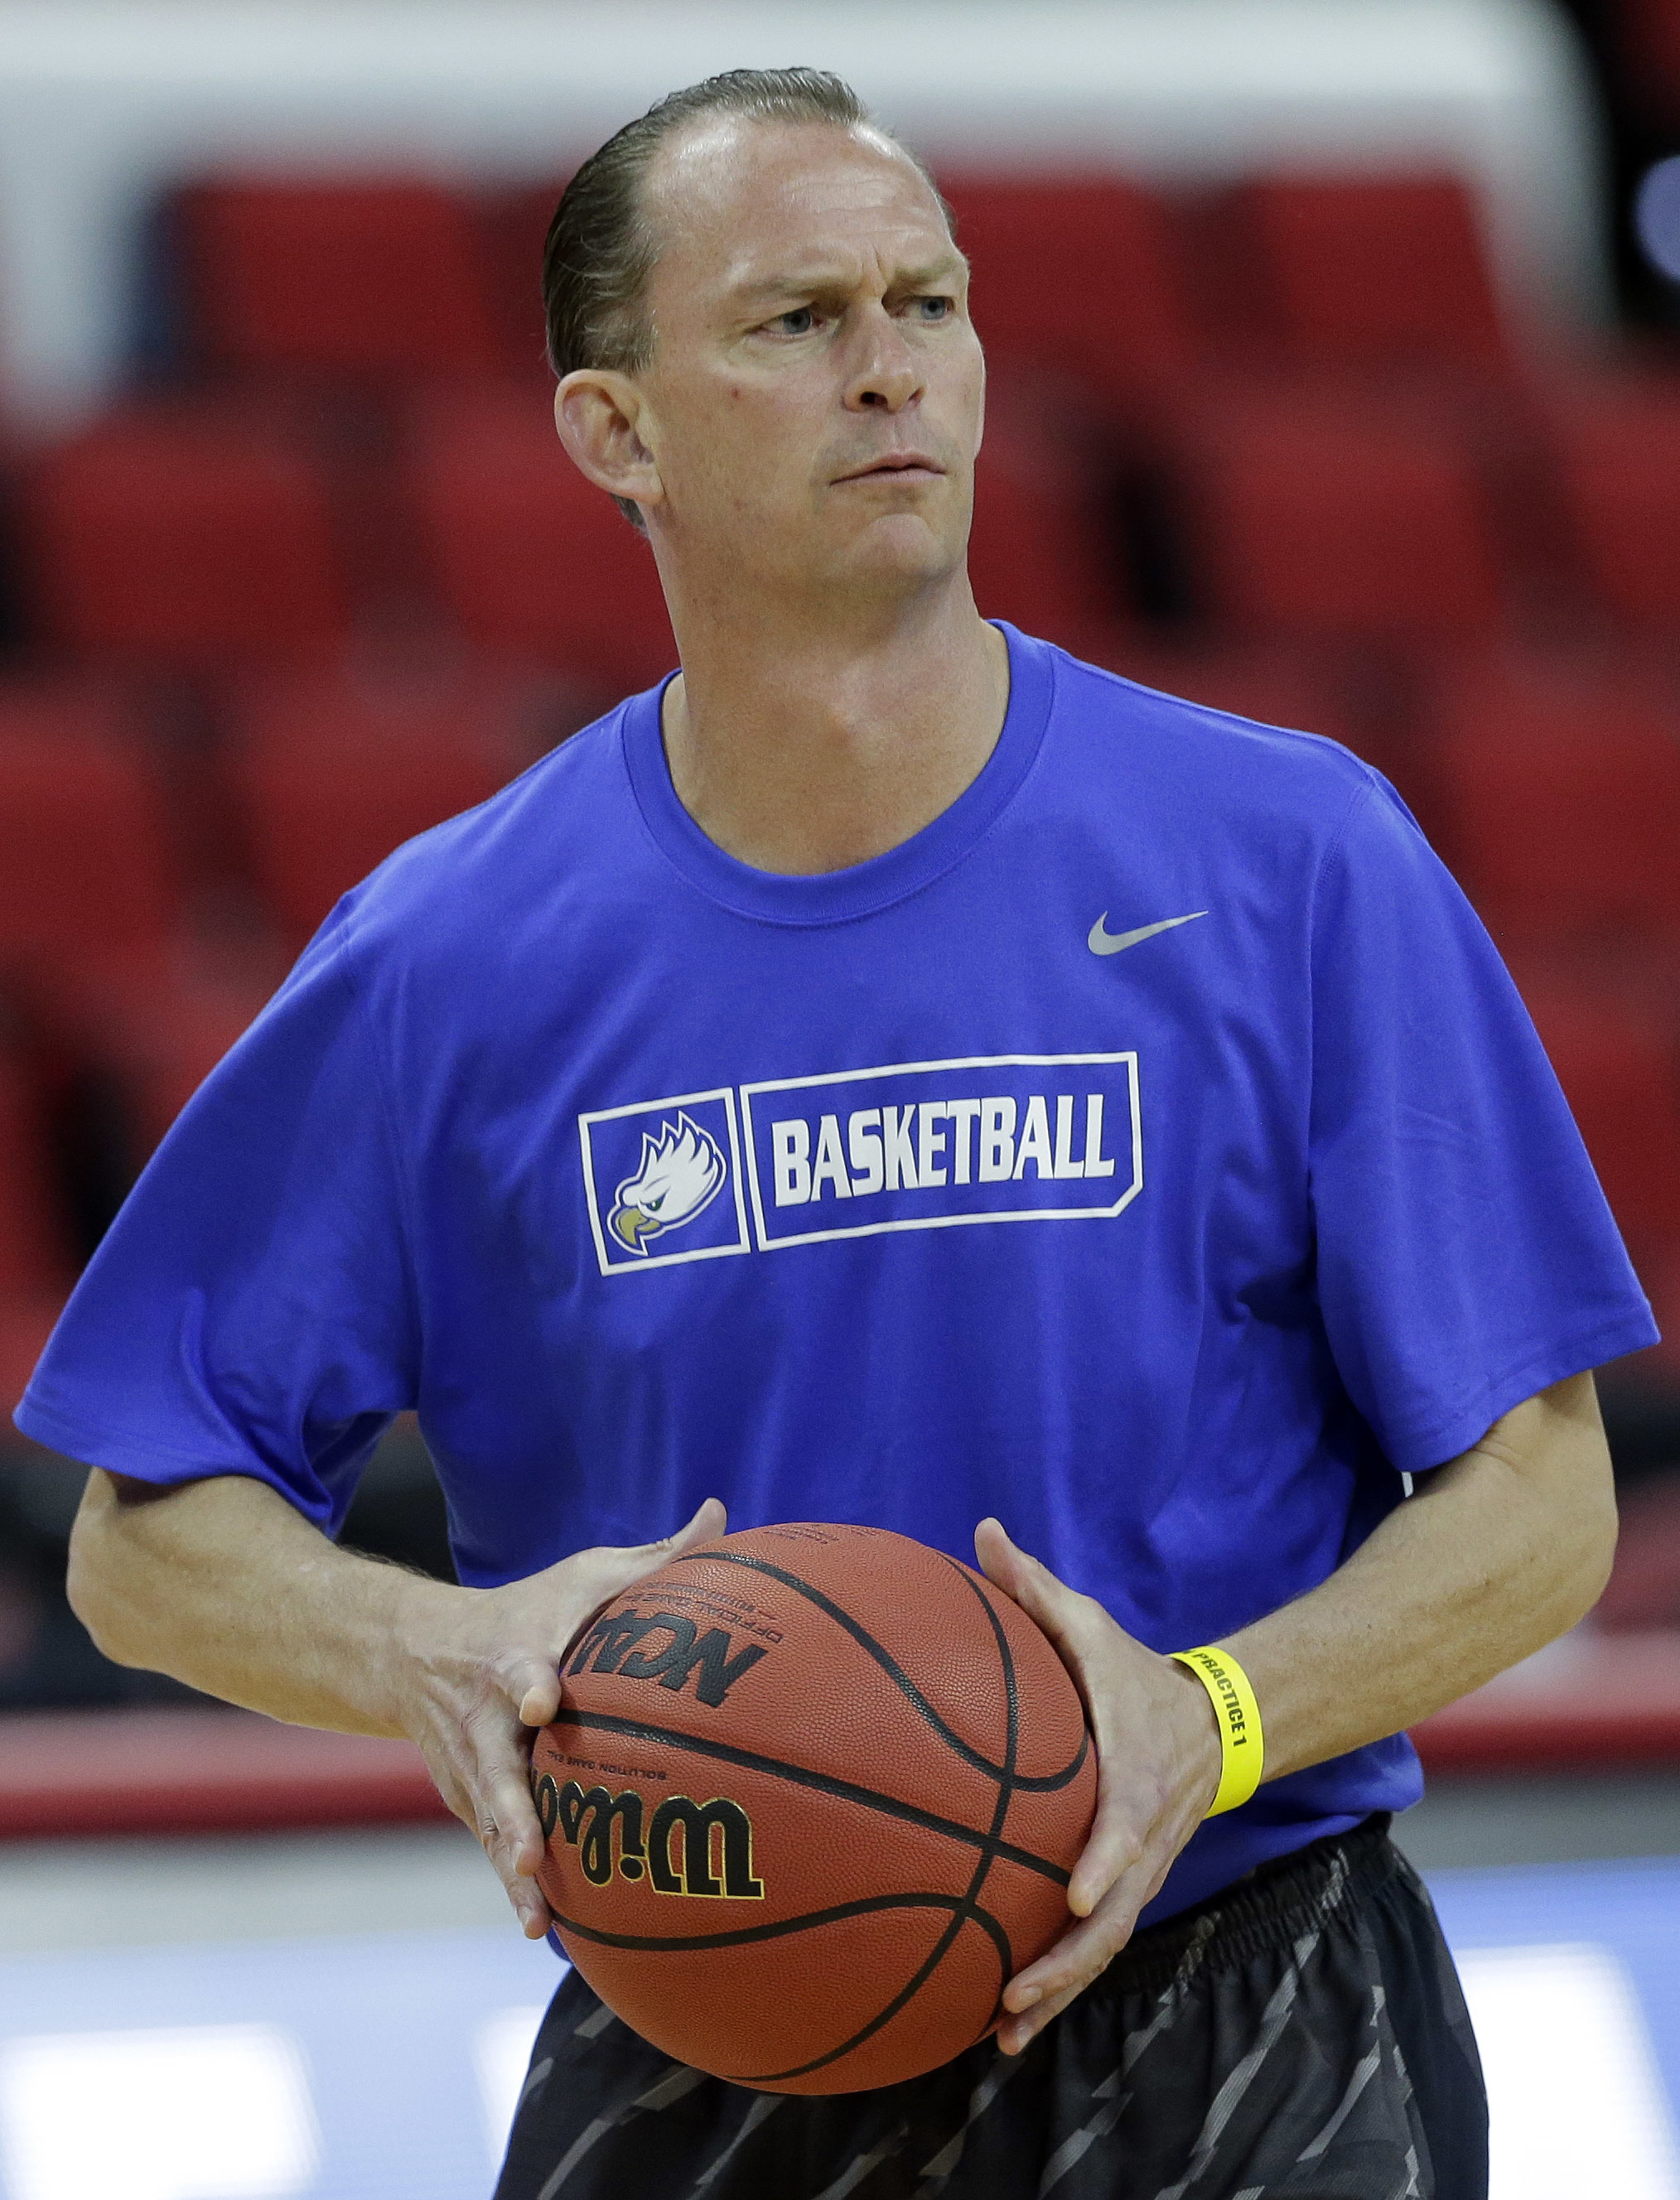 Florida Gulf Coast coach Joe Dooley works with his team during practice for an NCAA college basketball men's tournament first-round game in Raleigh, N.C., Wednesday, March 16, 2016. Florida Gulf Coast plays North Carolina on Thursday. (AP Photo/Gerry Broo